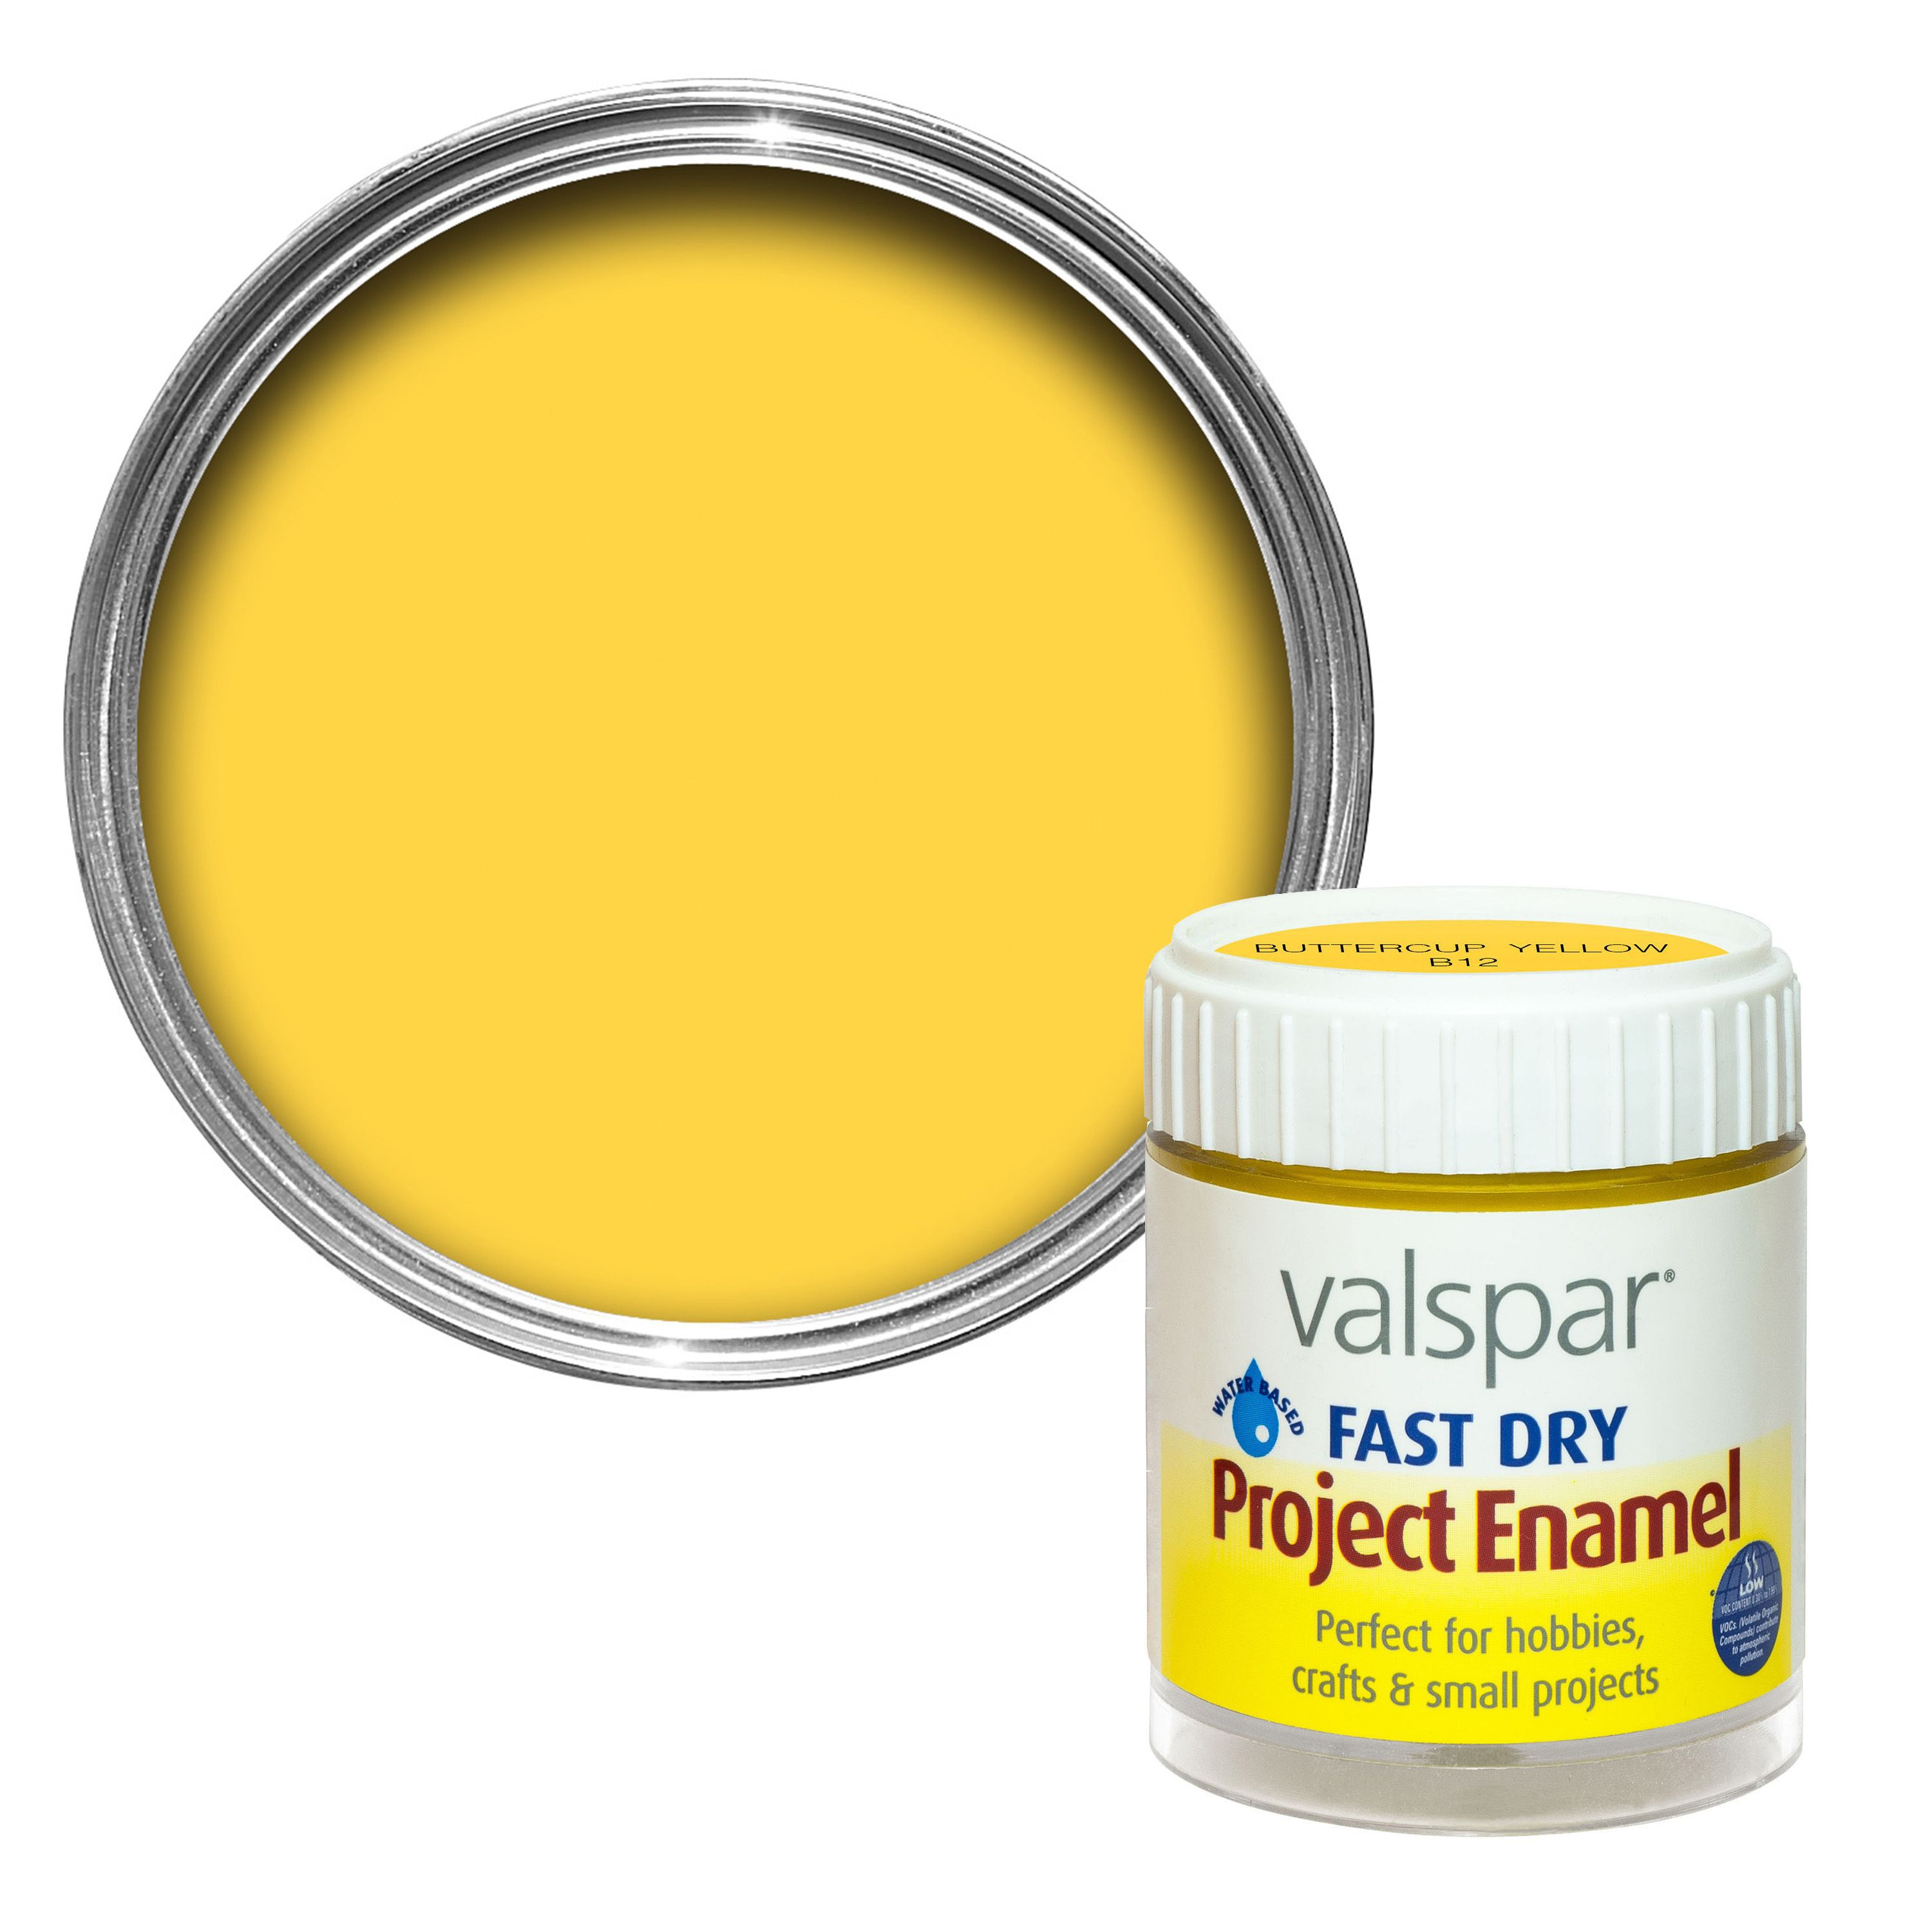 Valspar buttercup yellow satin enamel paint 59 ml for Metallic yellow paint